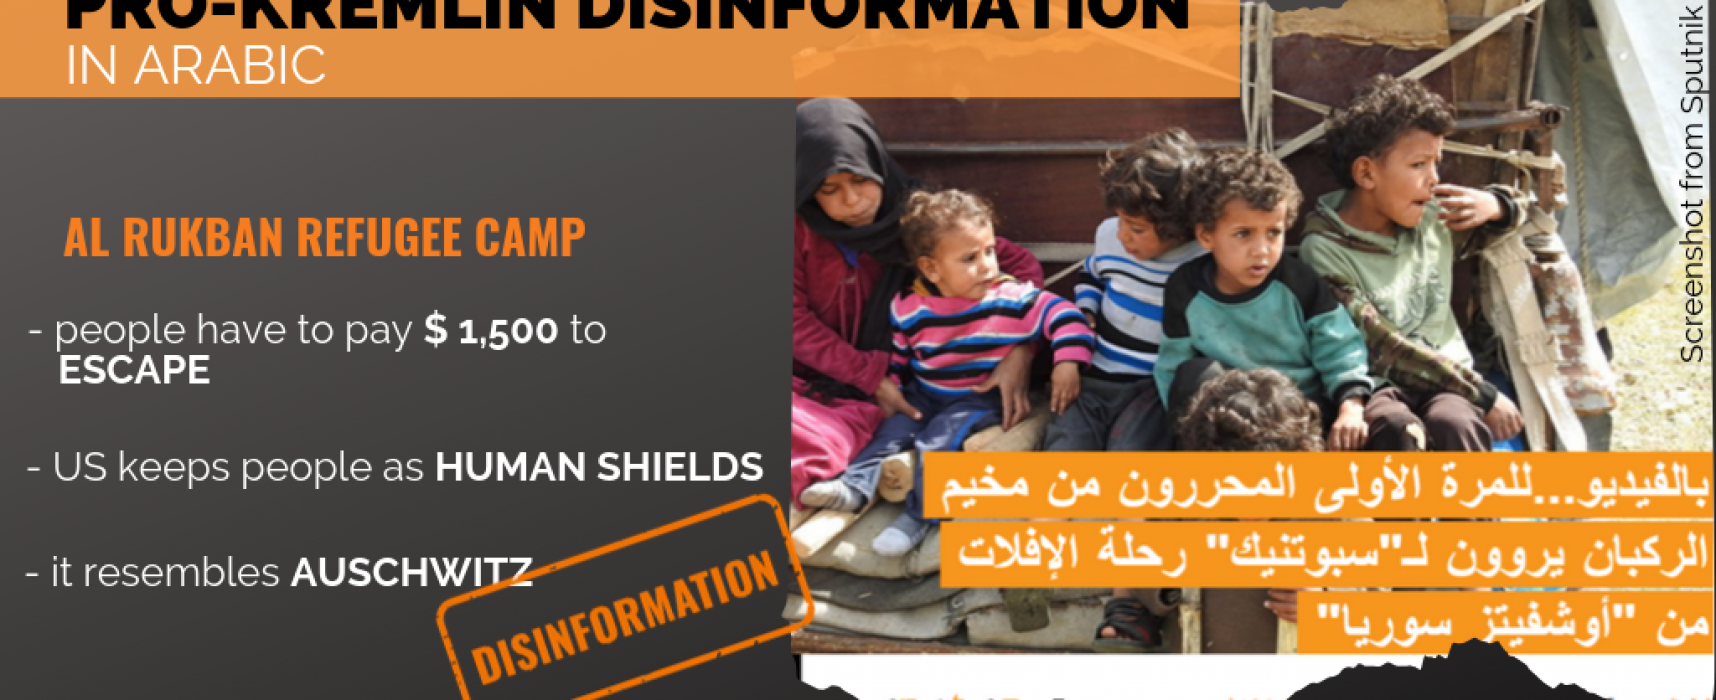 "Sputnik and RT manipulation in Arabic: Al Rukban as a ""Nazi Camp"""